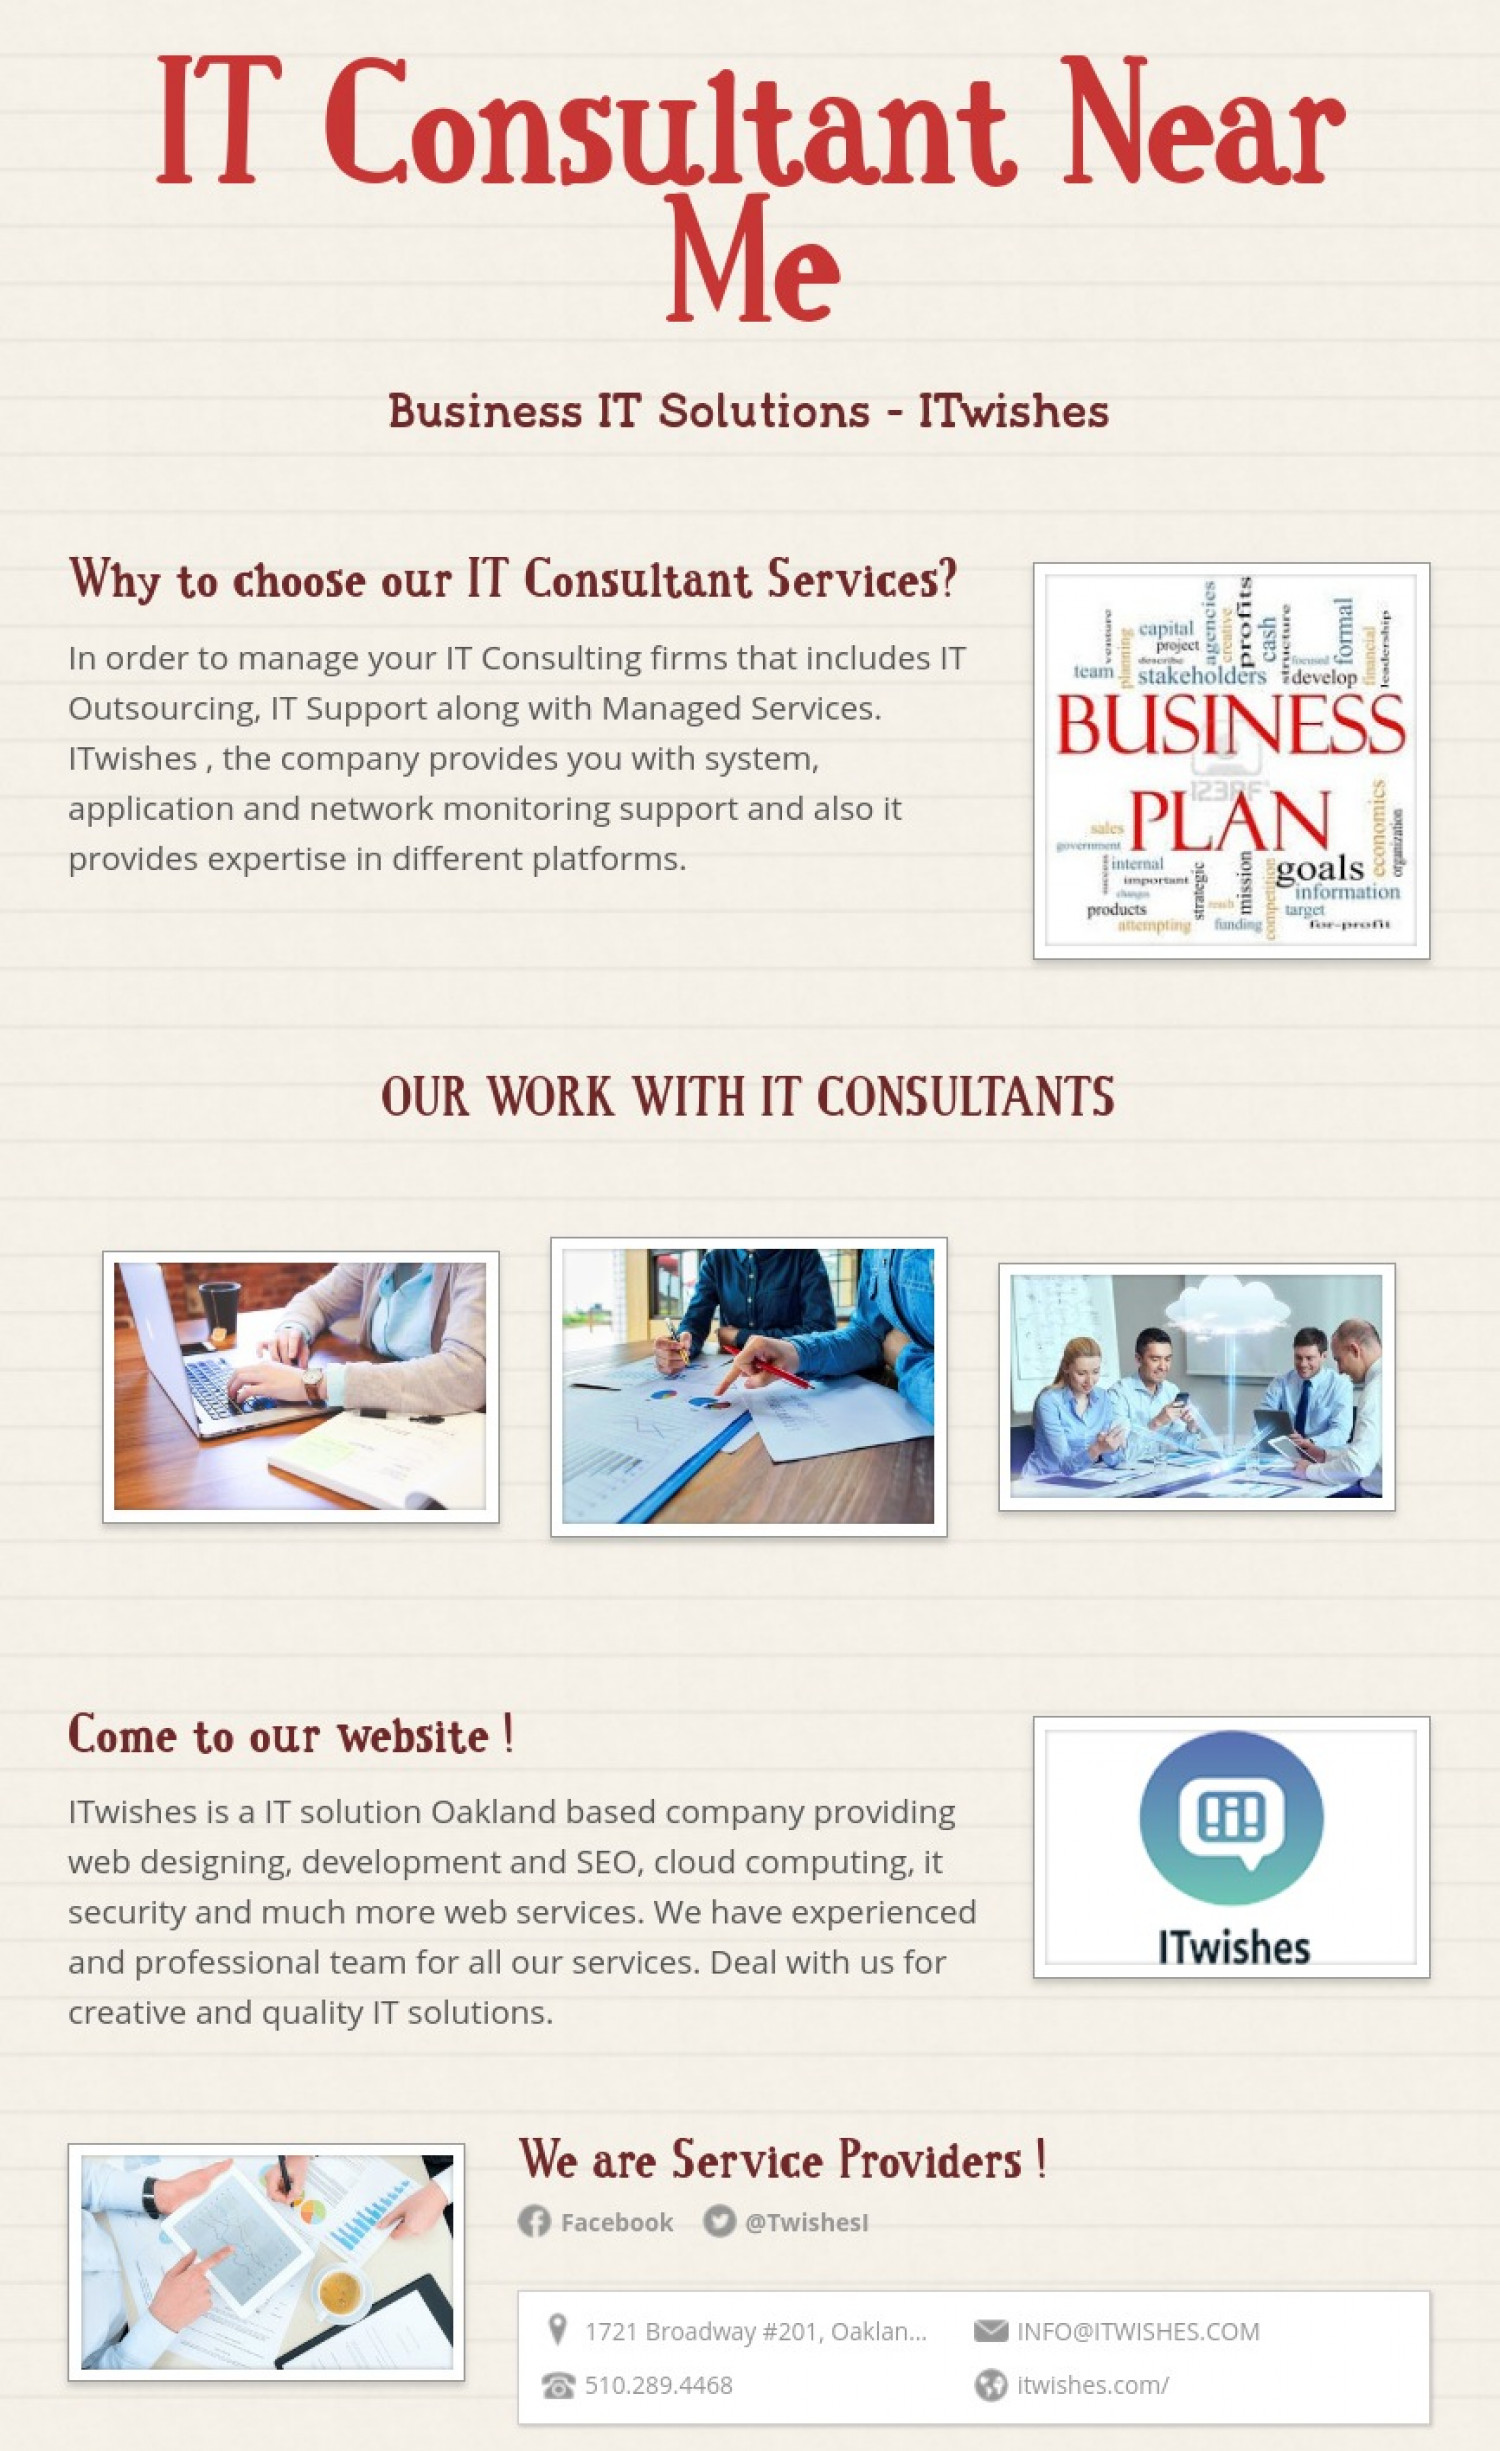 IT Consultant Near Me Infographic